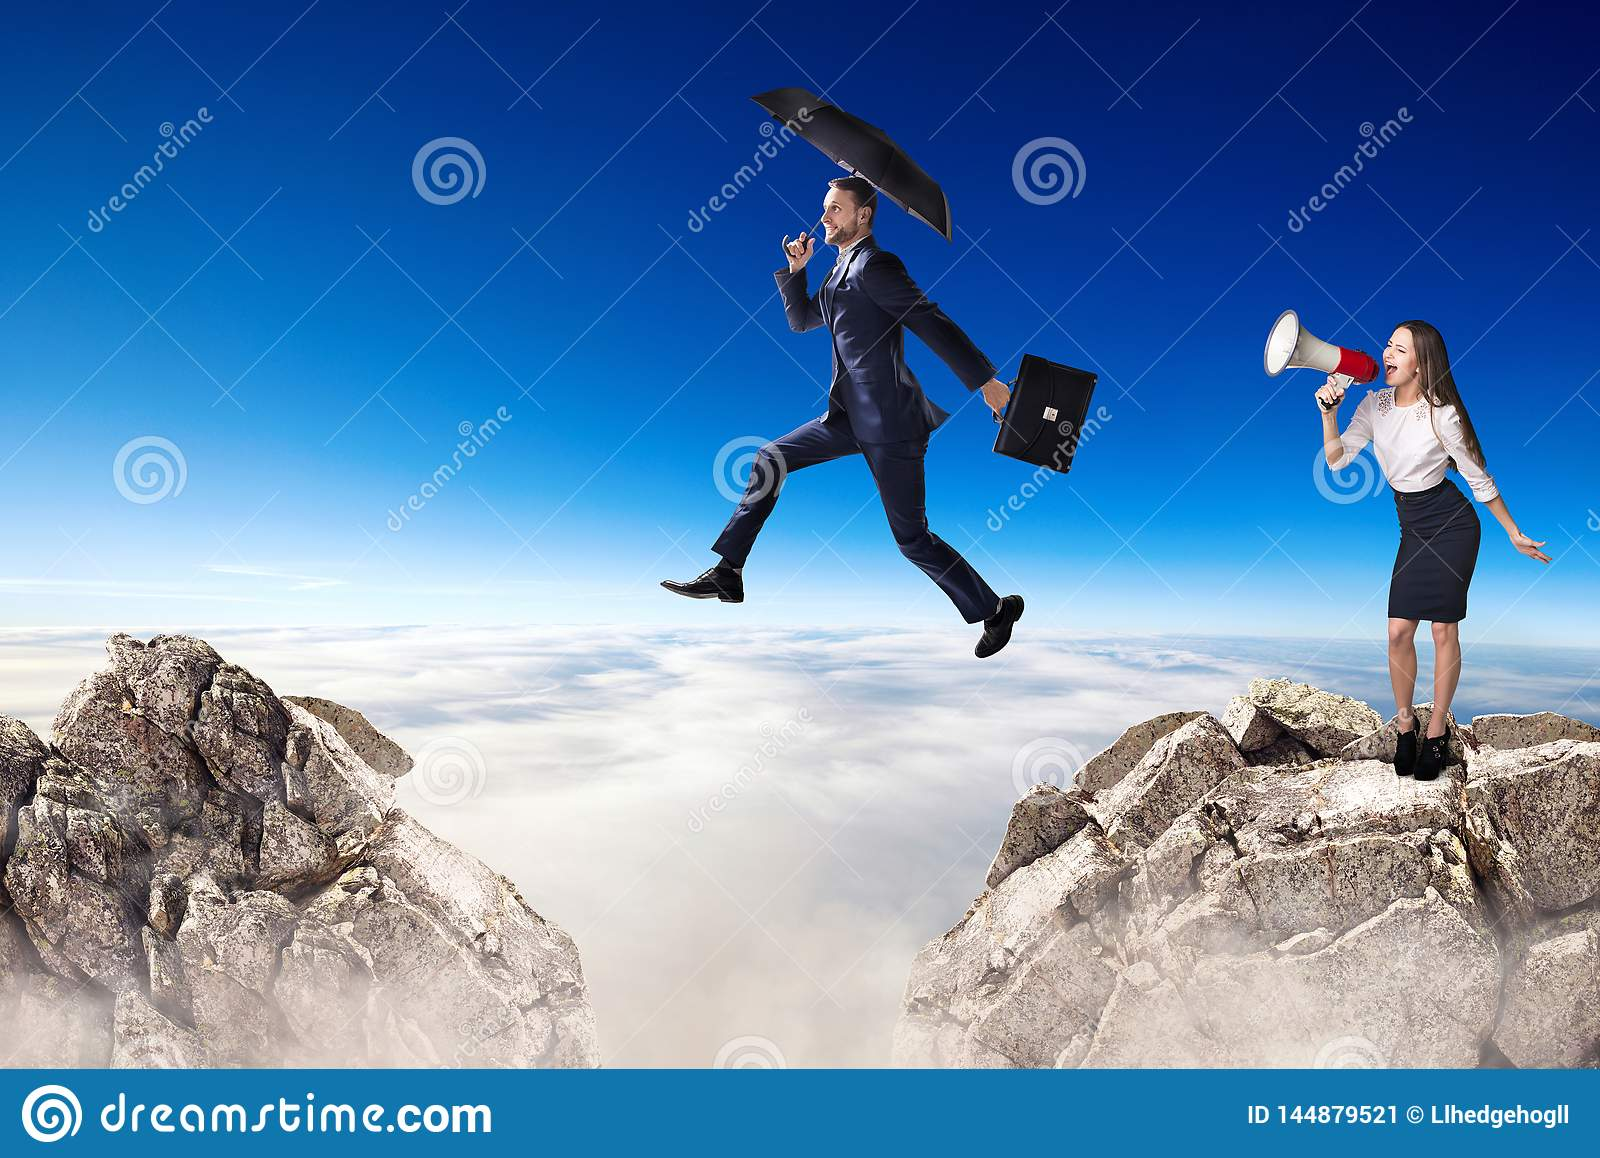 Businessman jumping over a cliff and collegue is cheering with bullhorn.